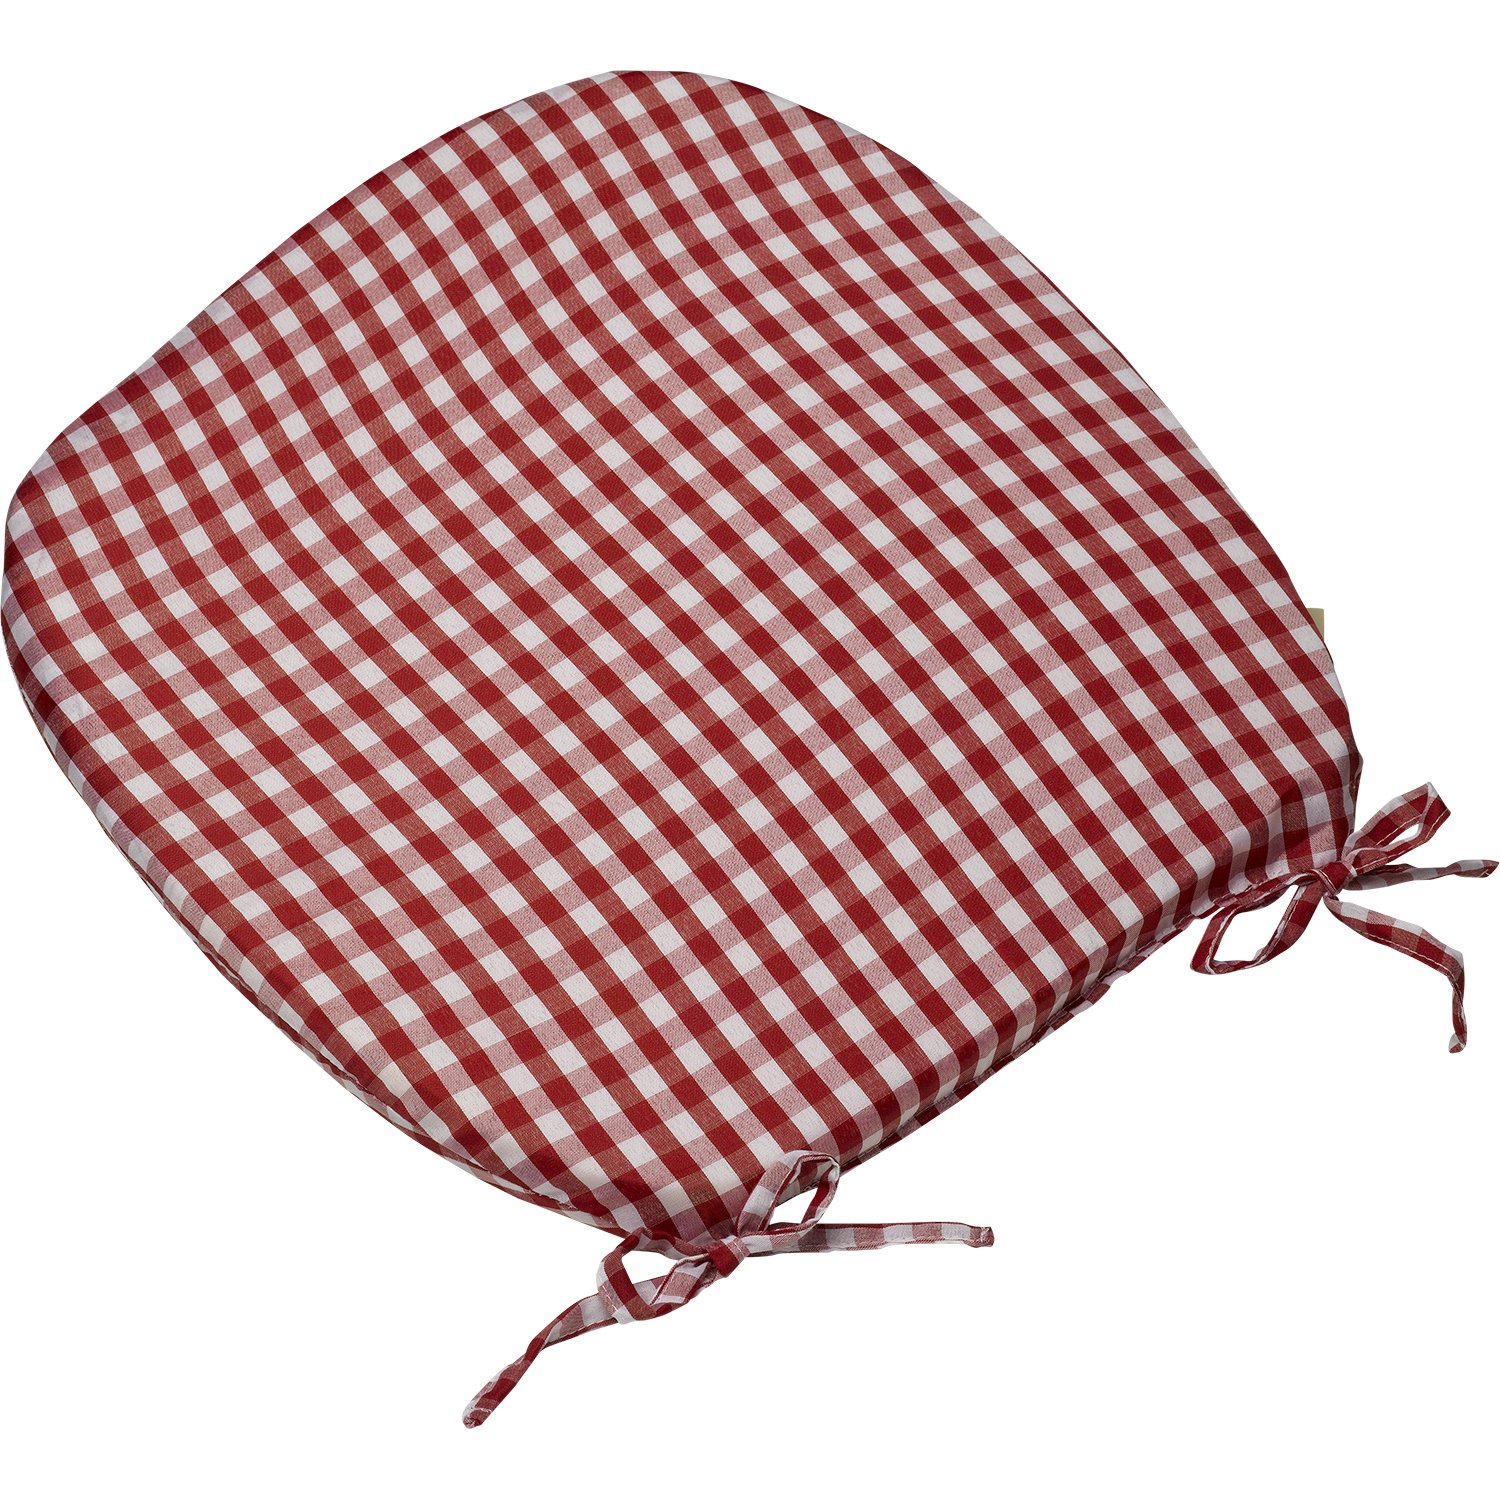 Amazon com  Gingham Check Round Seat Pad Outdoor Garden Dining Kitchen Chair  Cushion 16  x 16   Blue  Home   KitchenAmazon com  Gingham Check Round Seat Pad Outdoor Garden Dining  . Round Seat Cushions For Dining Room Chairs. Home Design Ideas